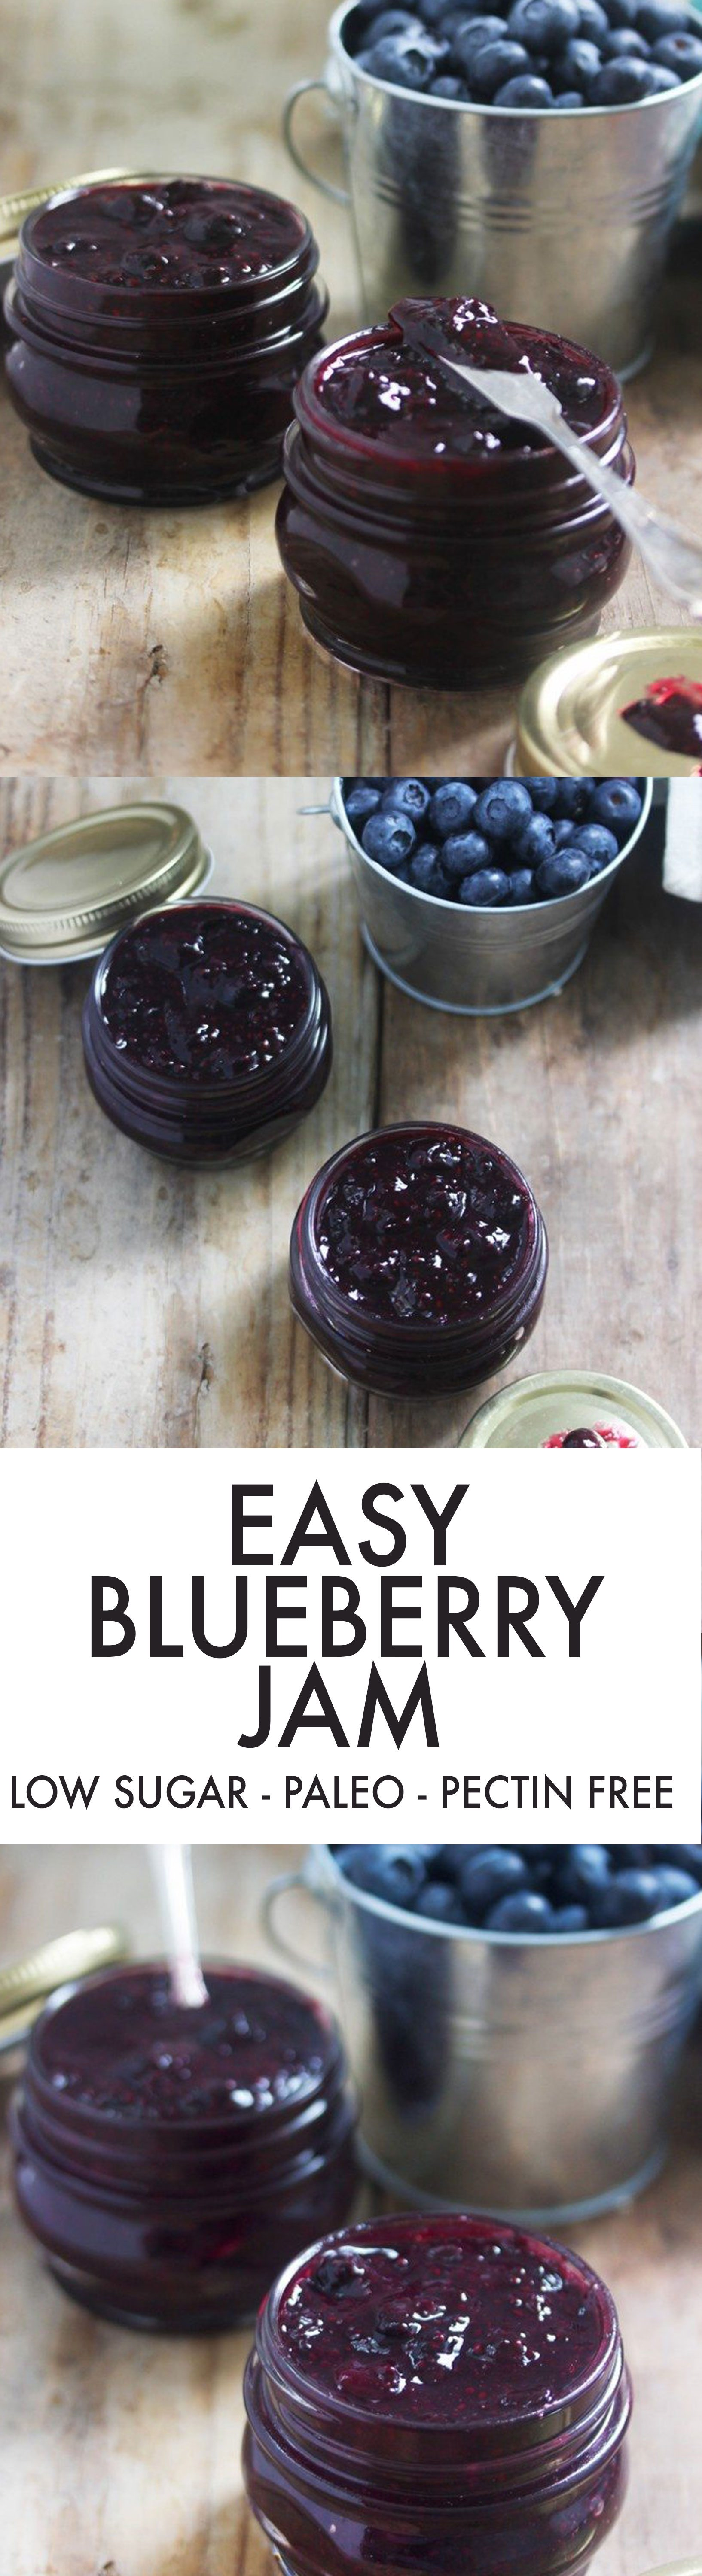 Easy Blueberry Jam [VIDEO] - Lexi's Clean Kitchen